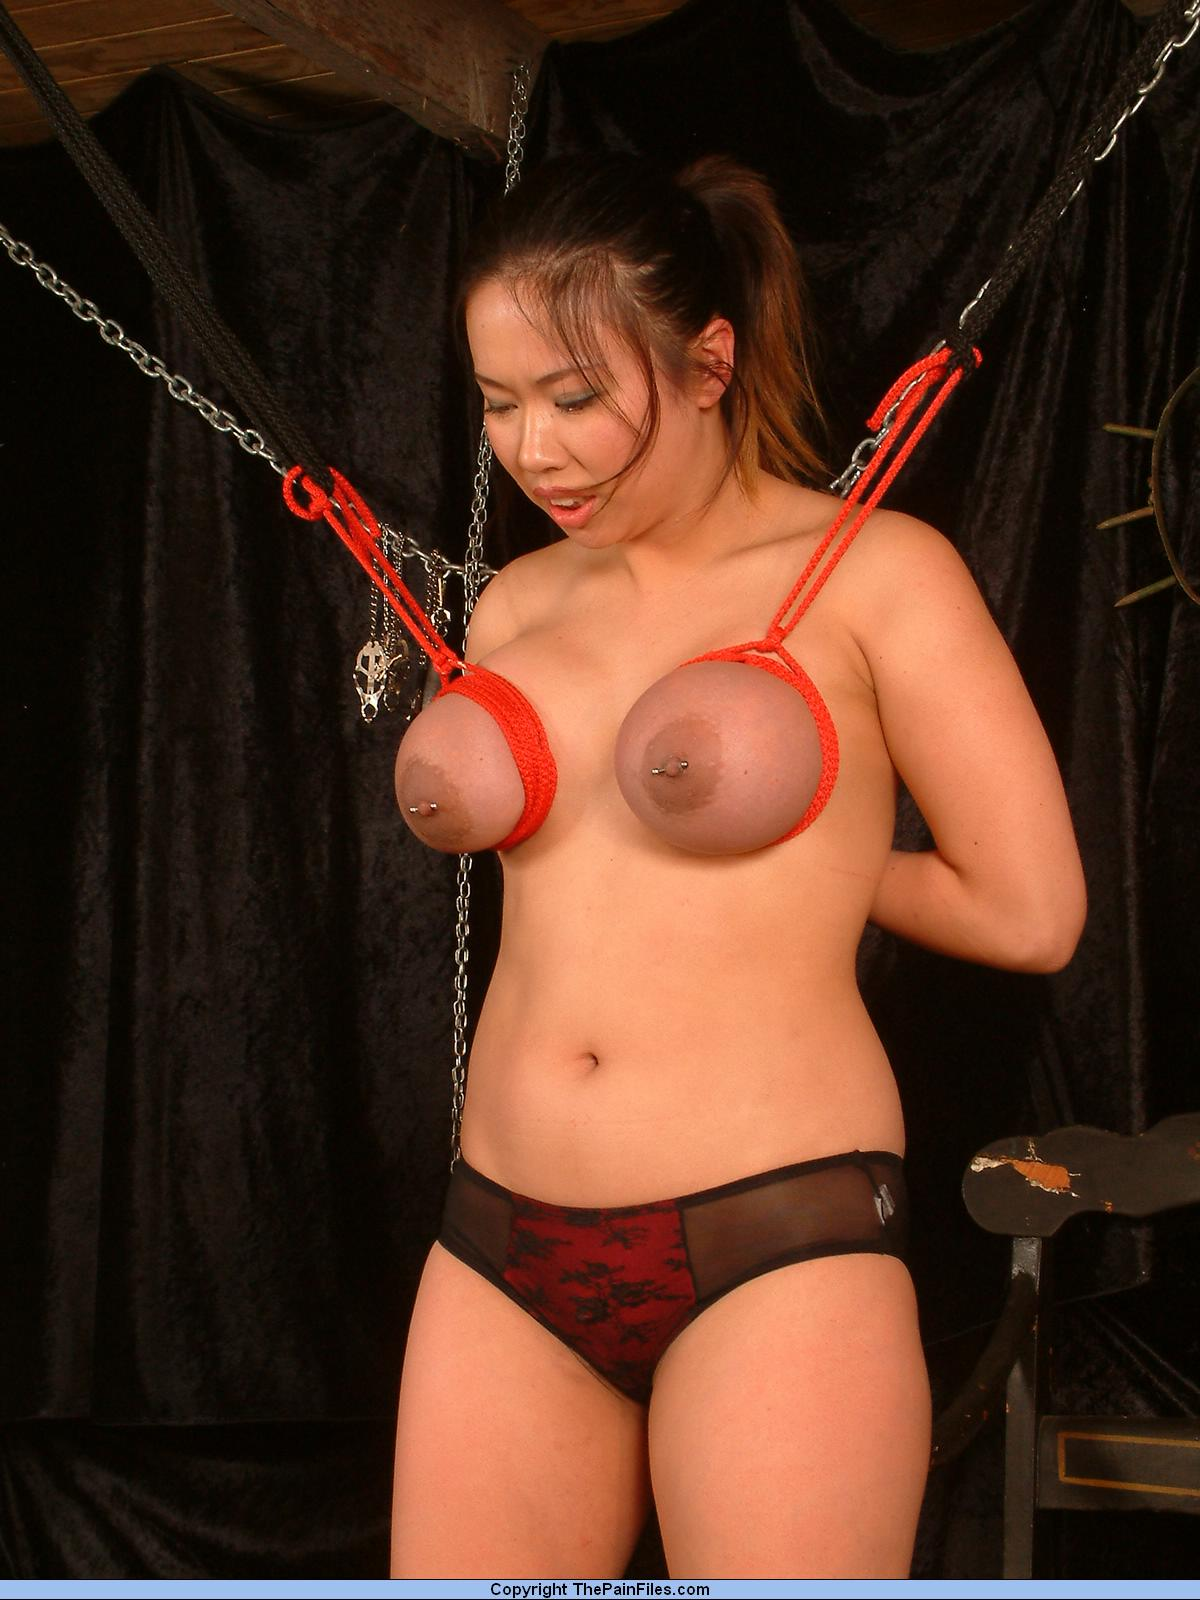 Accept. japanese breast rope bondage opinion